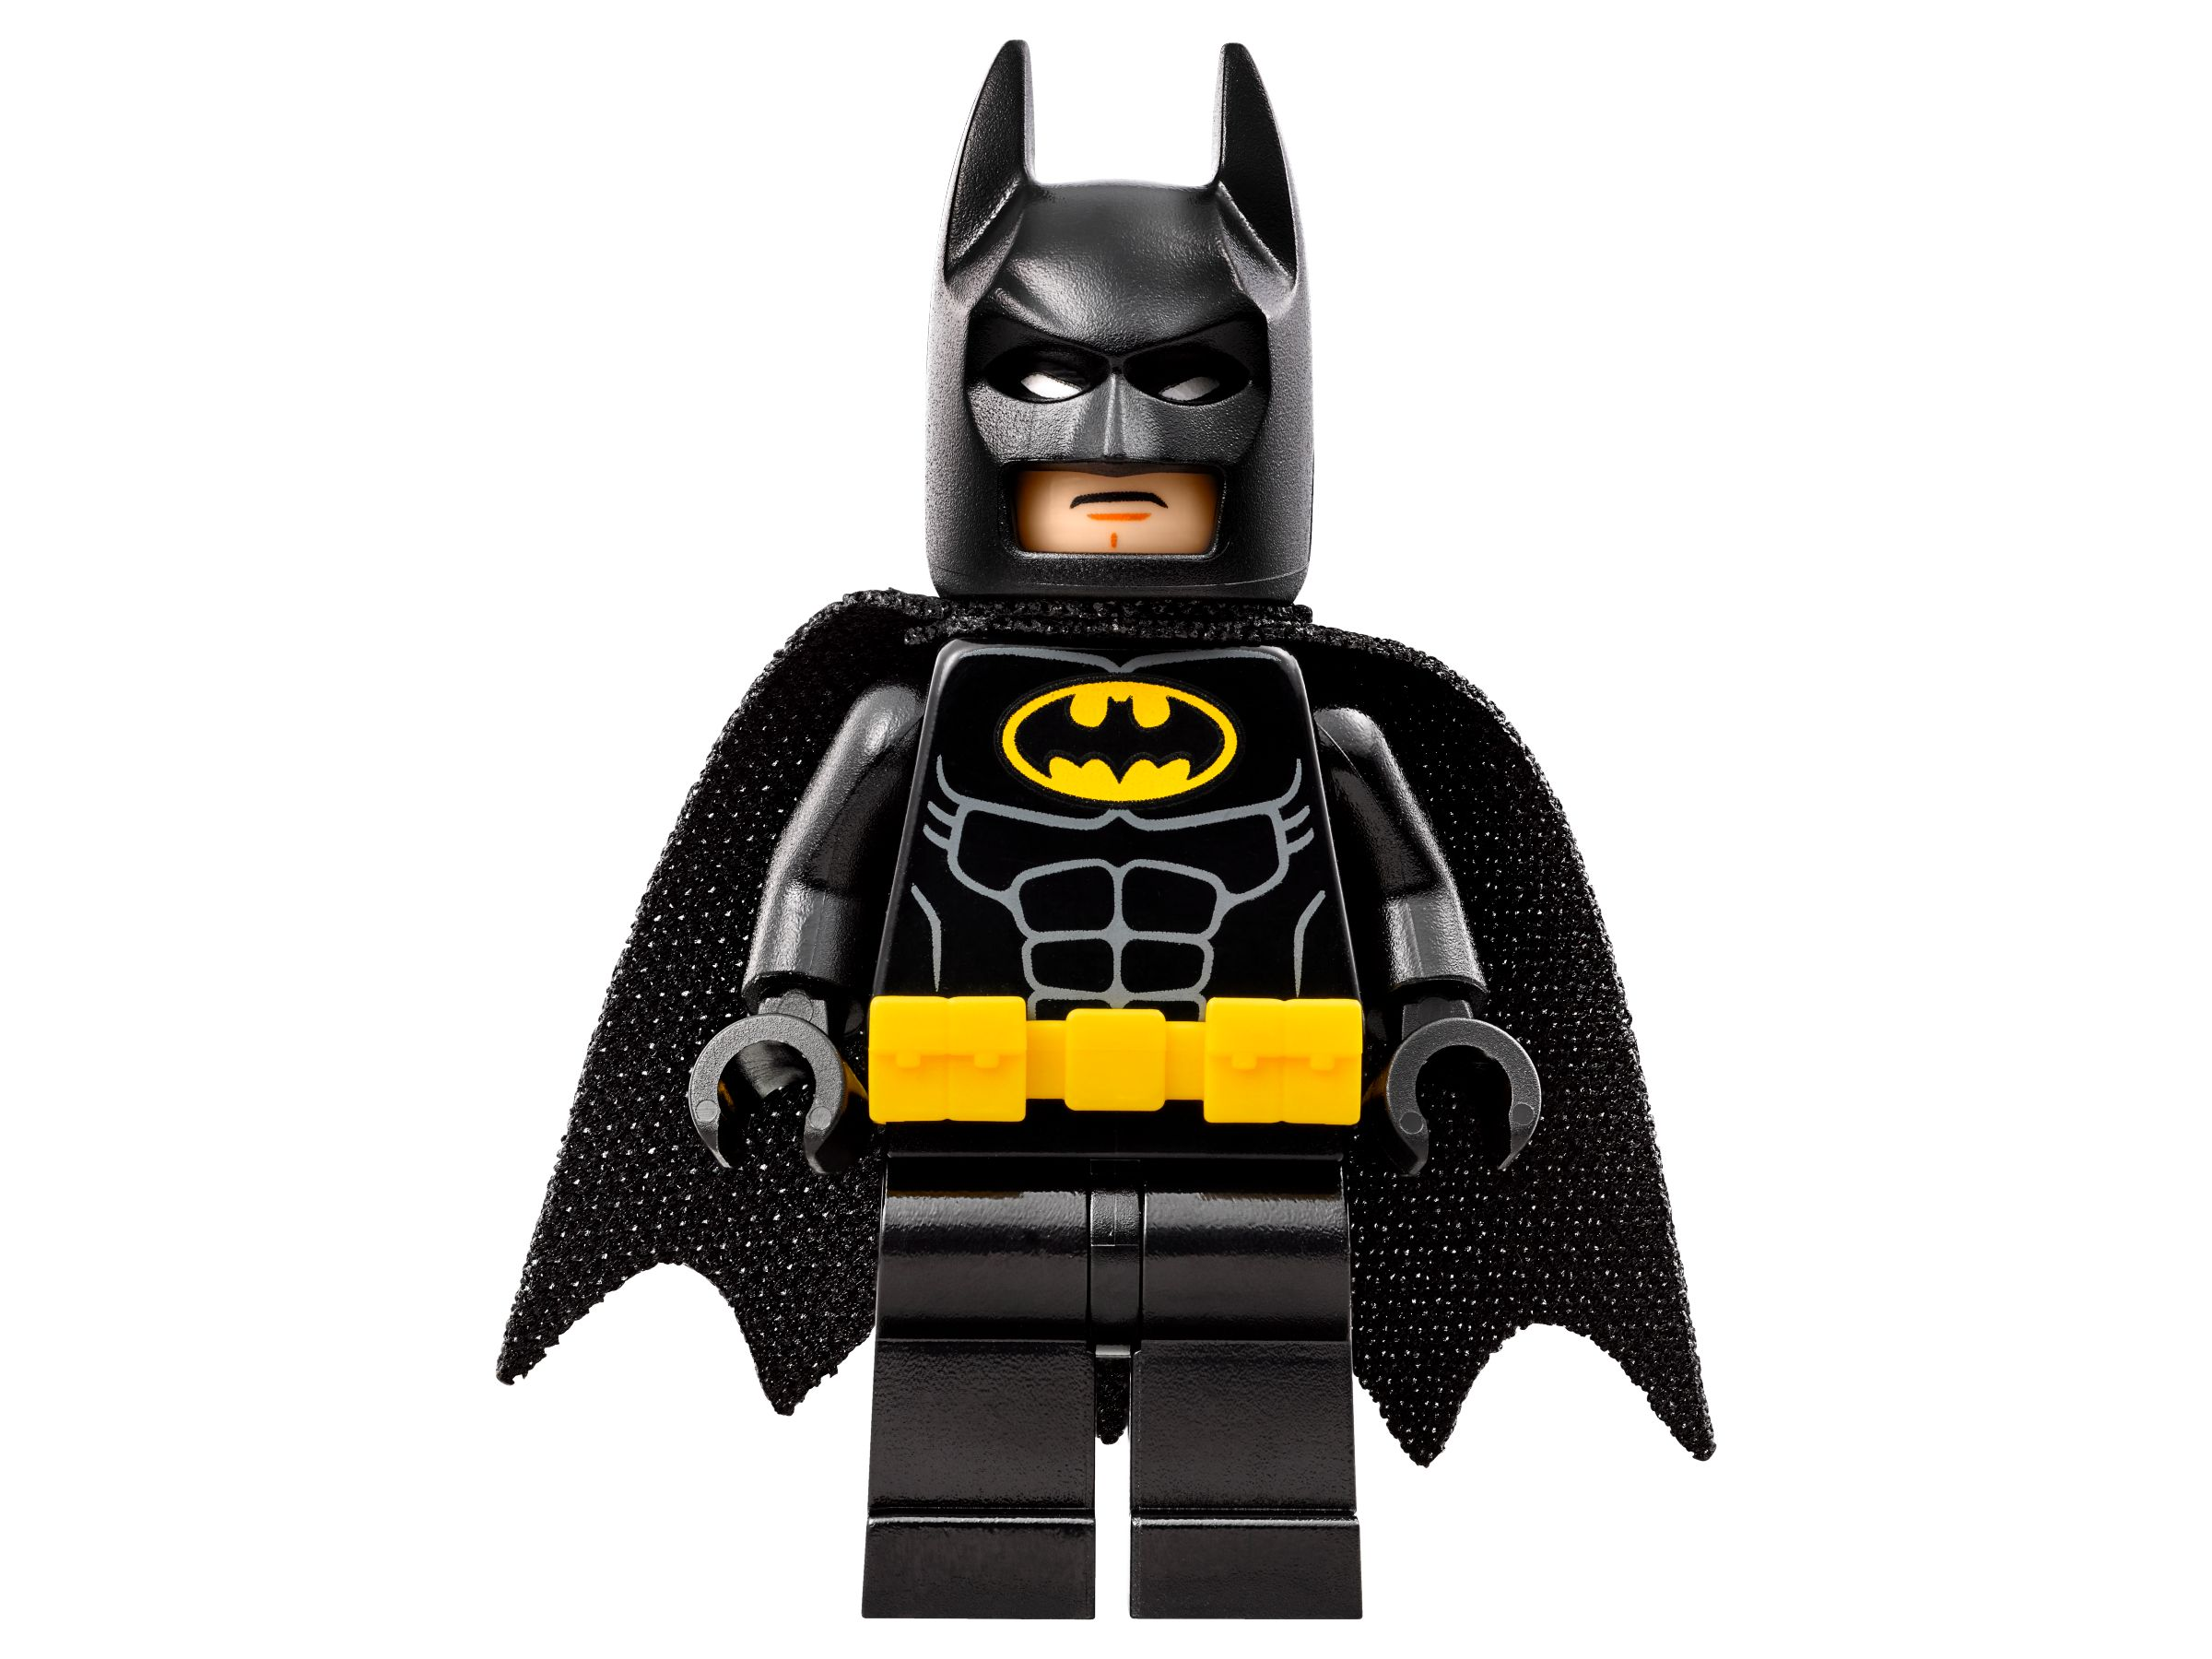 LEGO The LEGO Batman Movie 70909 Batcave-Einbruch LEGO_70909_alt13.jpg